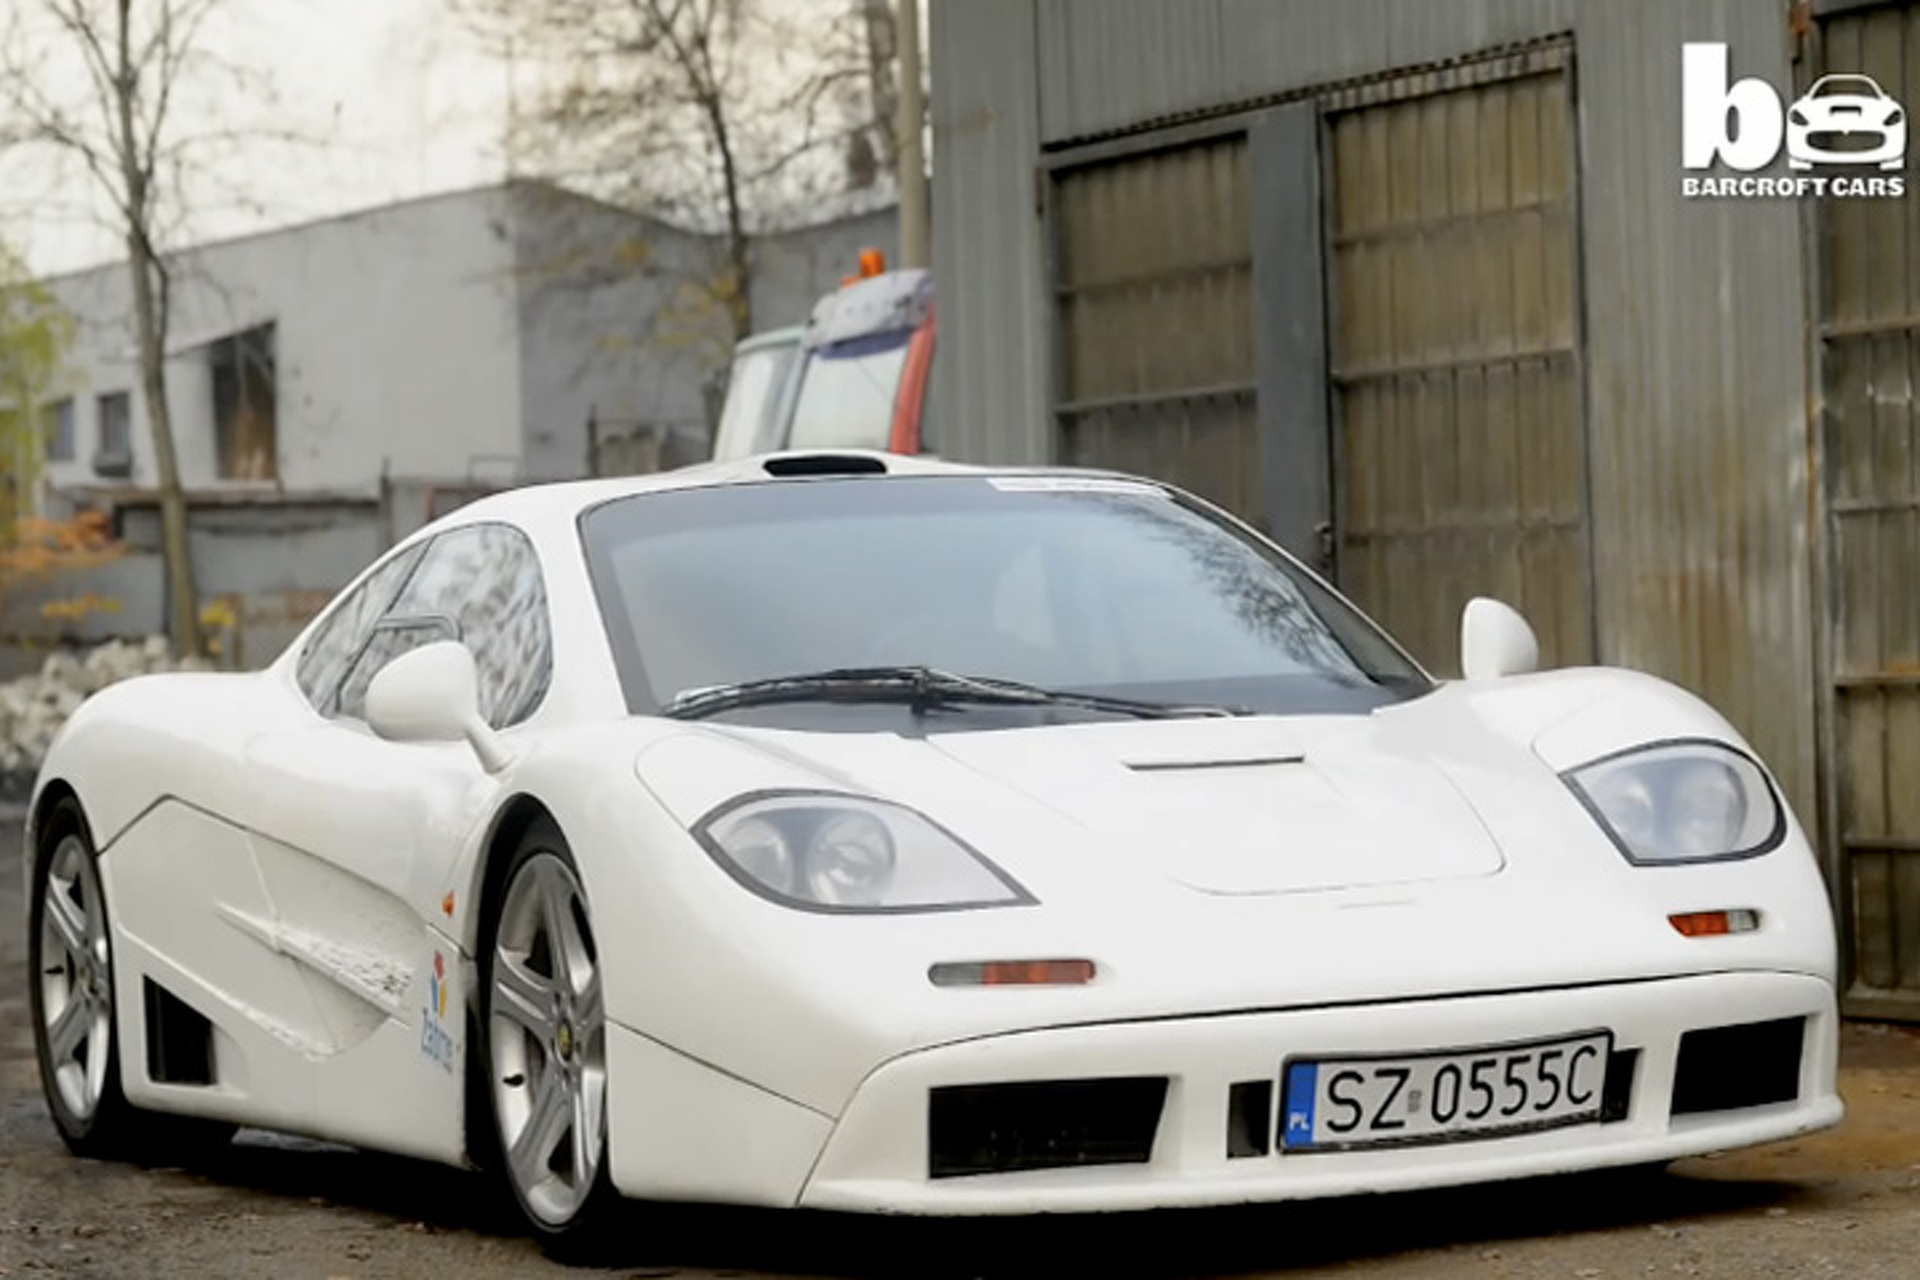 A Top Gear Fan Built this Incredible McLaren F1 Replica